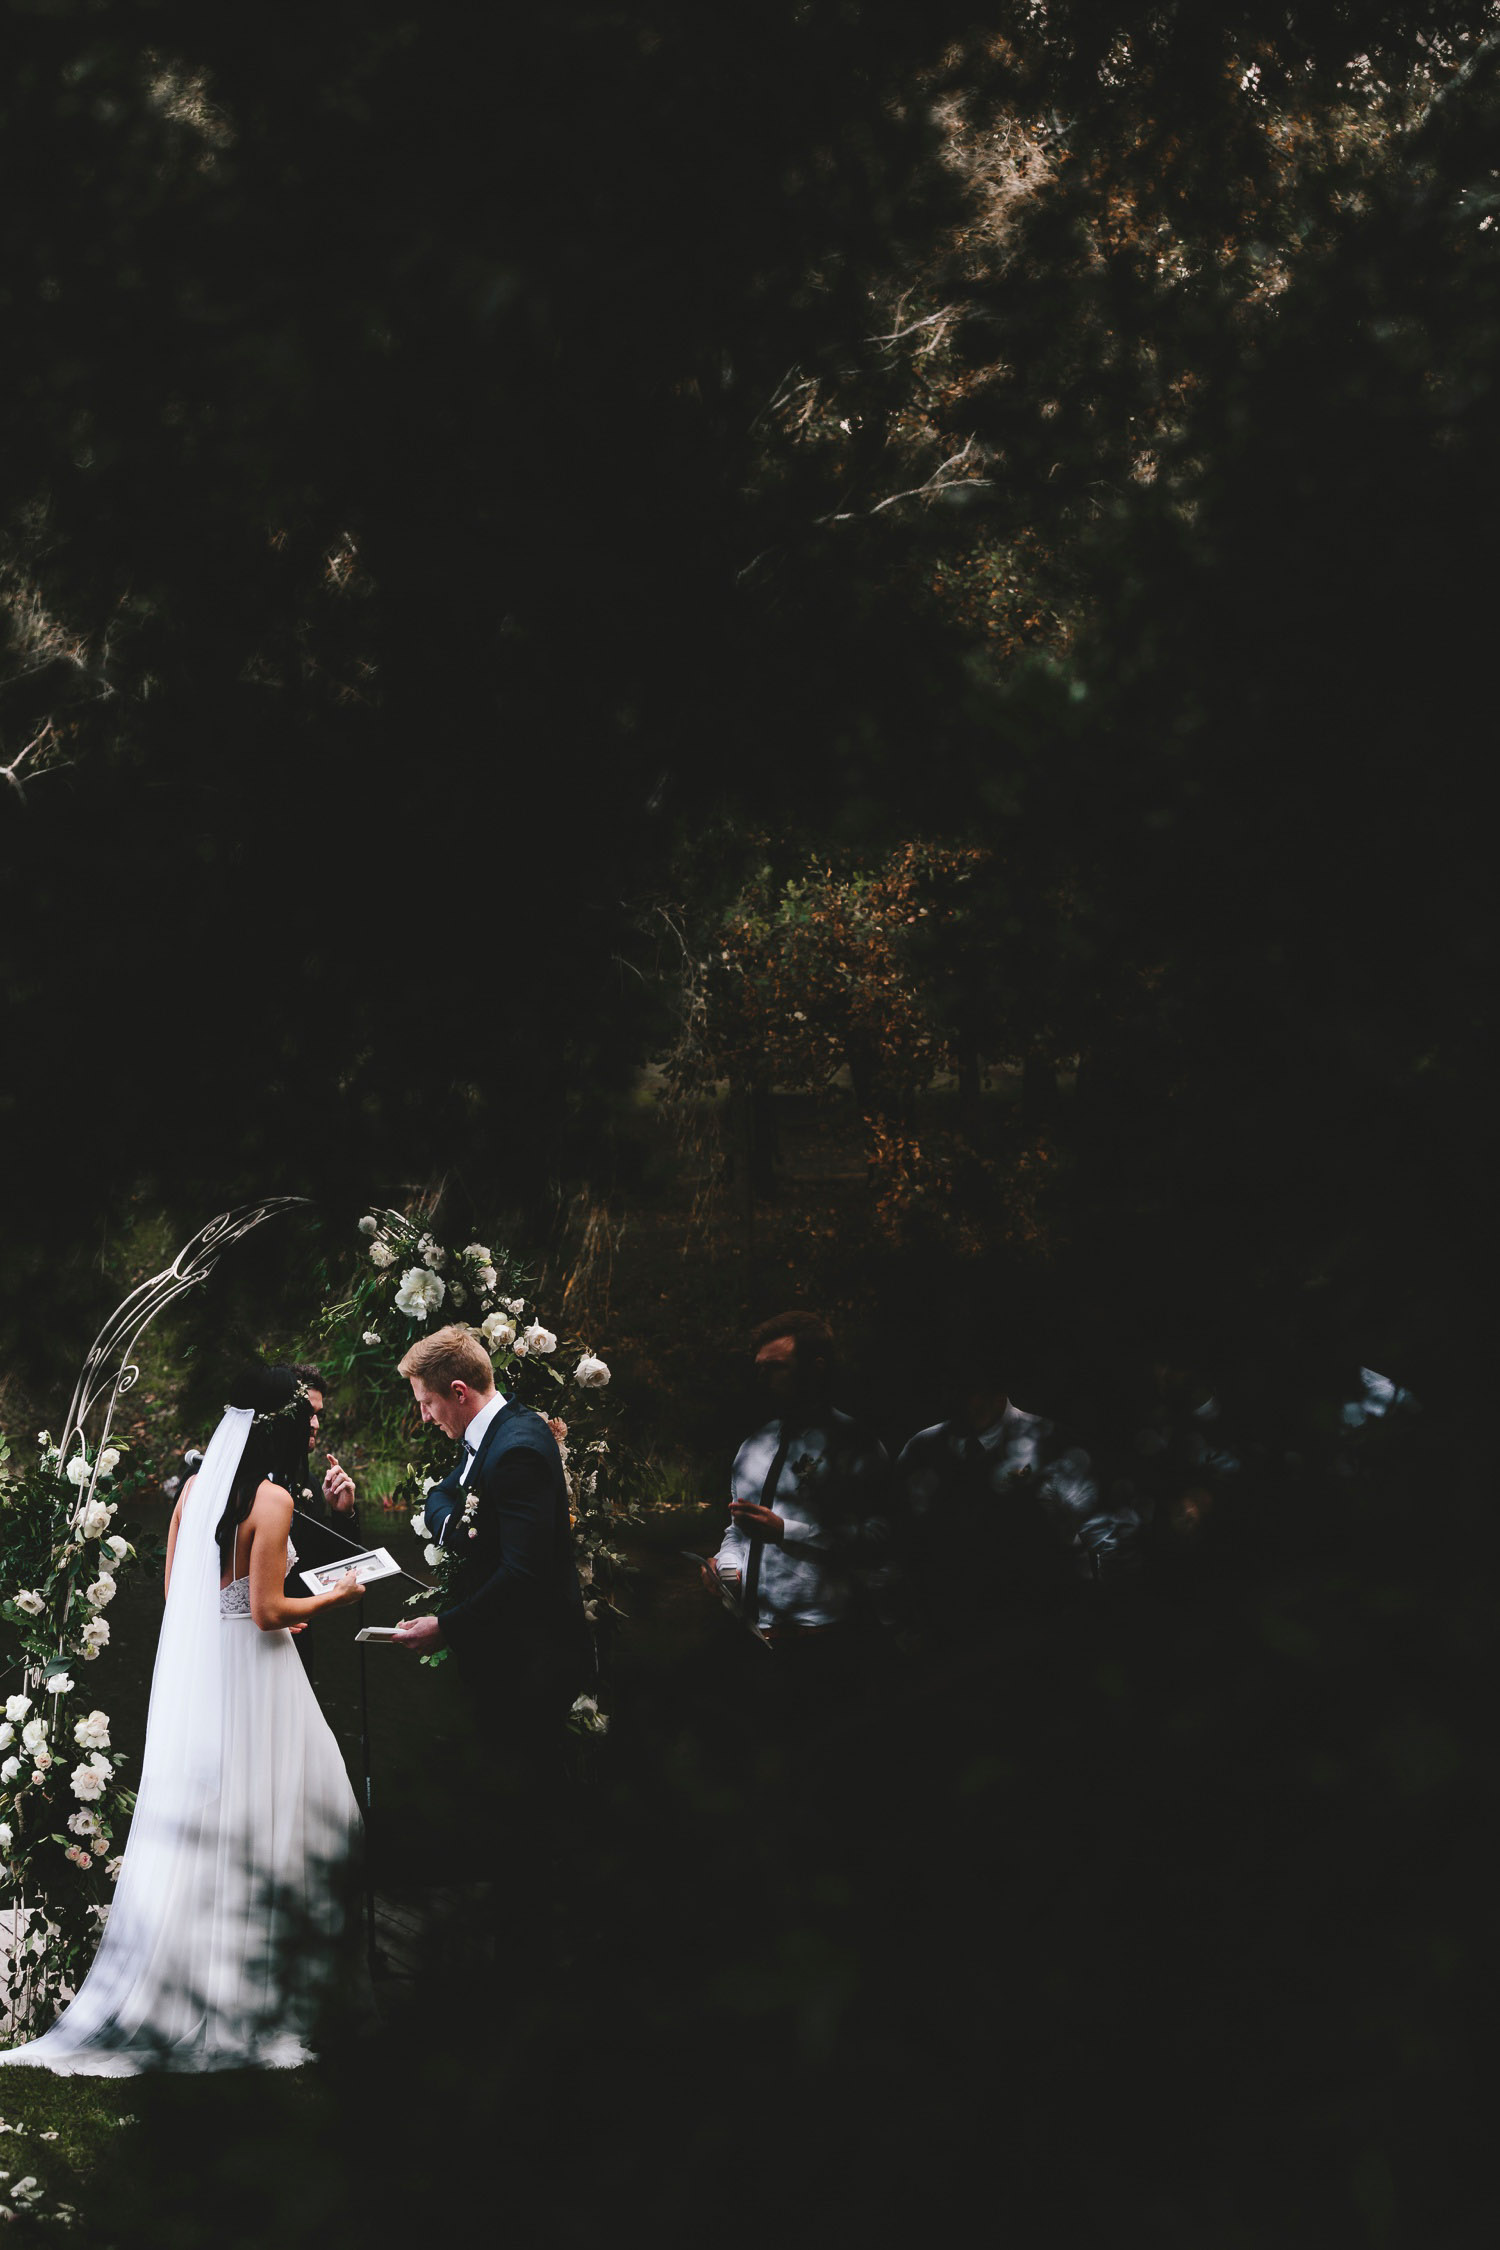 western-cape-photoghers-gen-scott-greyton-wedding-photography-charlie-ray69.jpg